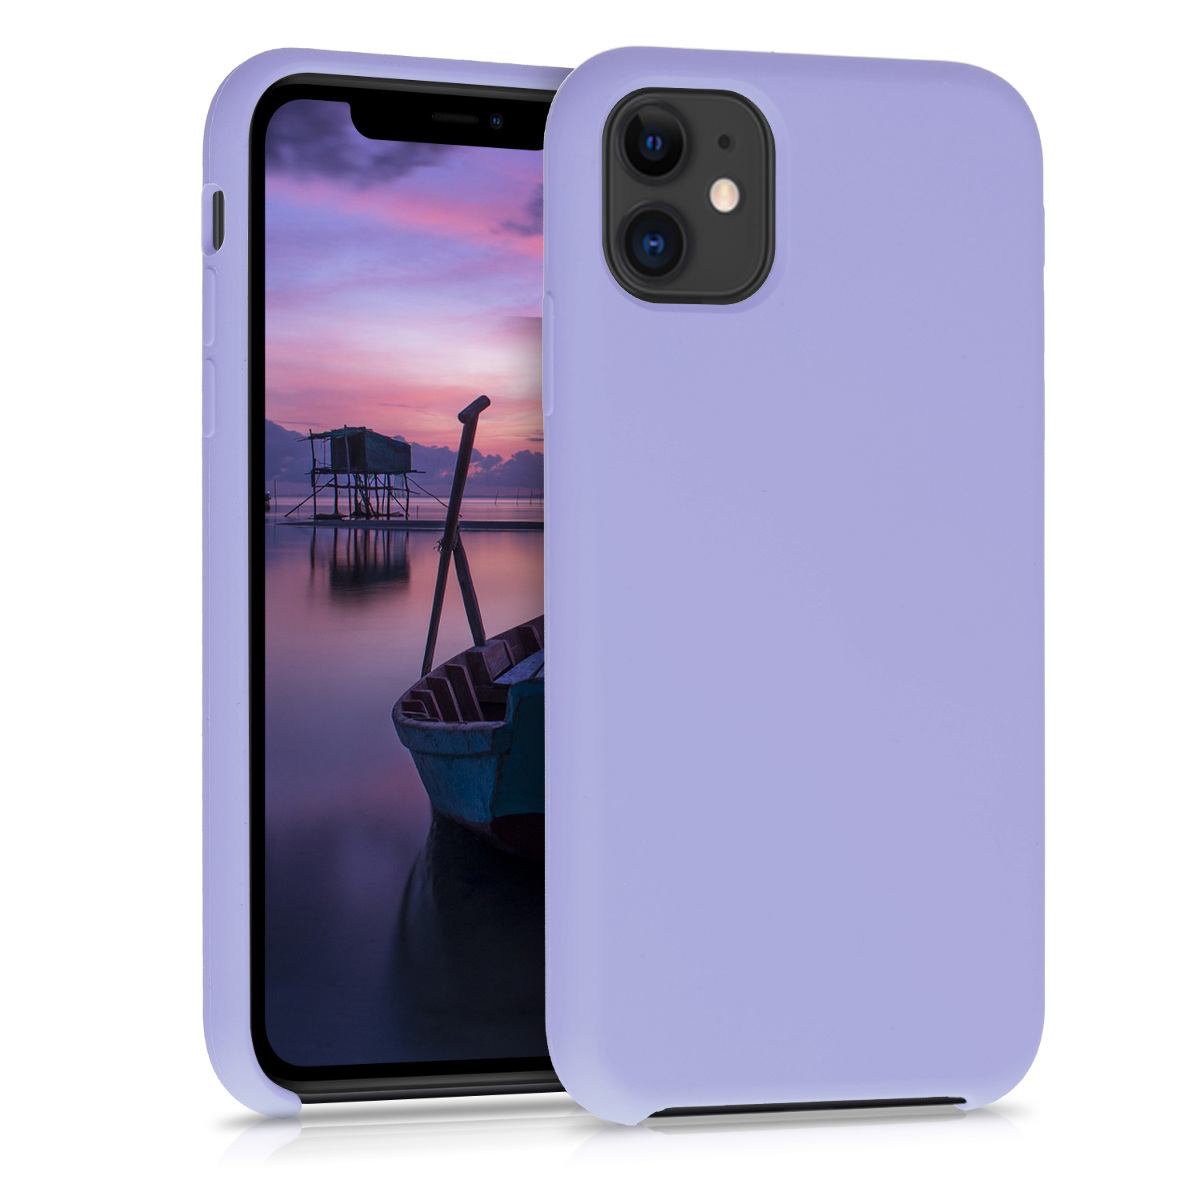 KW Θήκη Σιλικόνης Apple iPhone 11 - Soft Flexible Rubber - Lavender (49724.108)